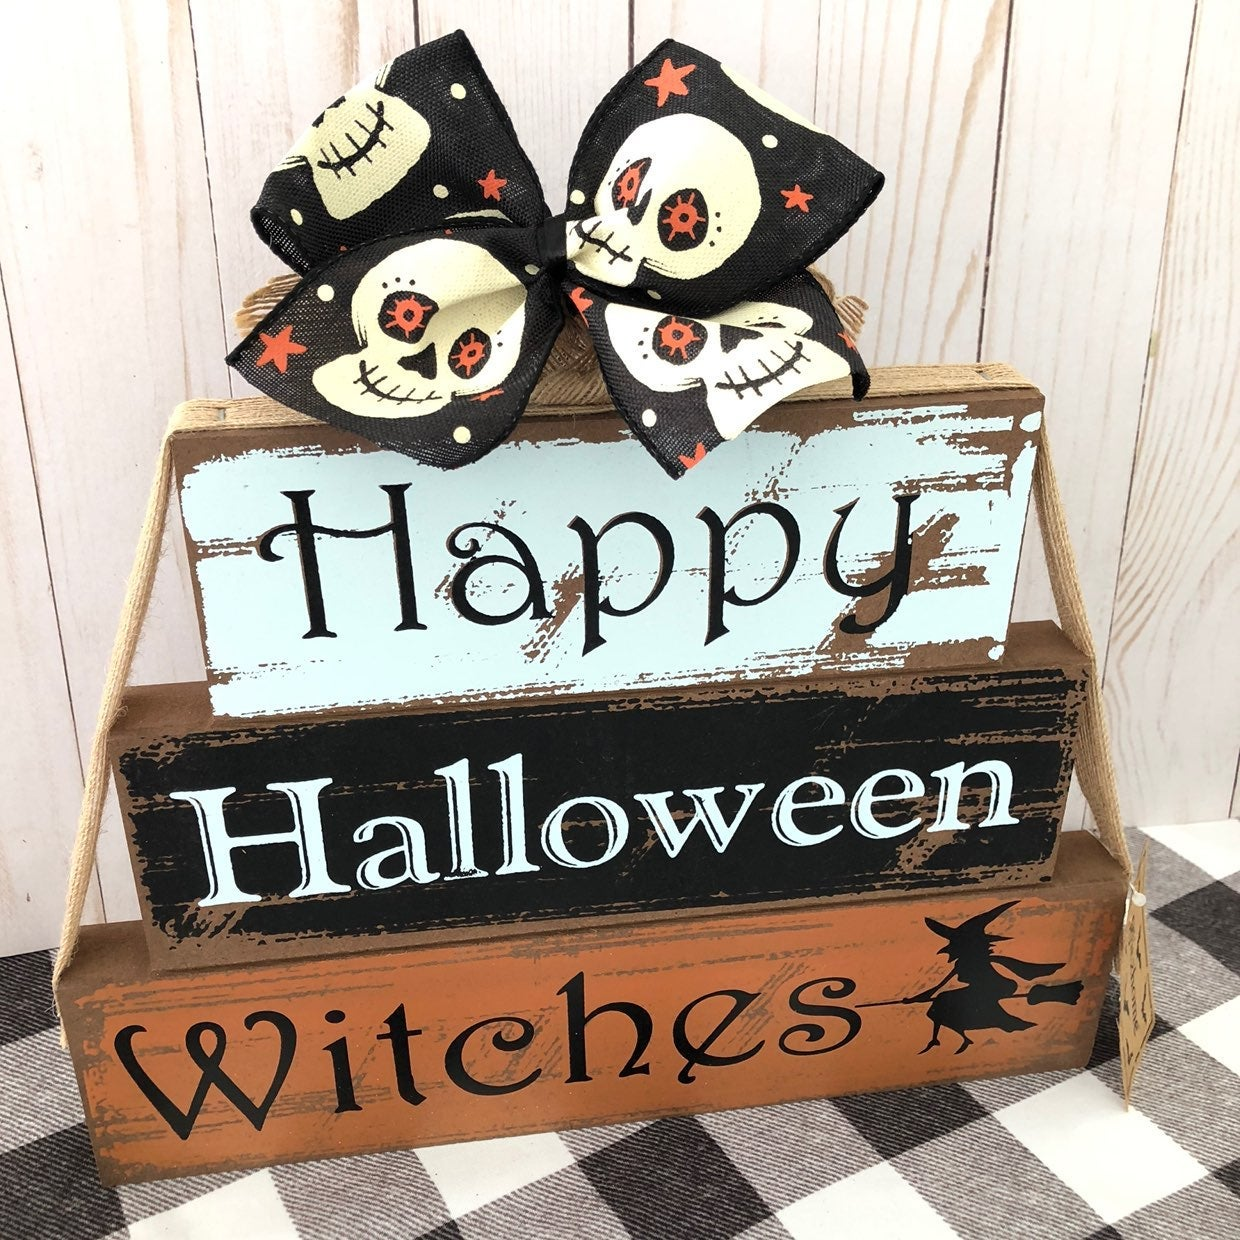 Happy Halloween Witches Wood Sign